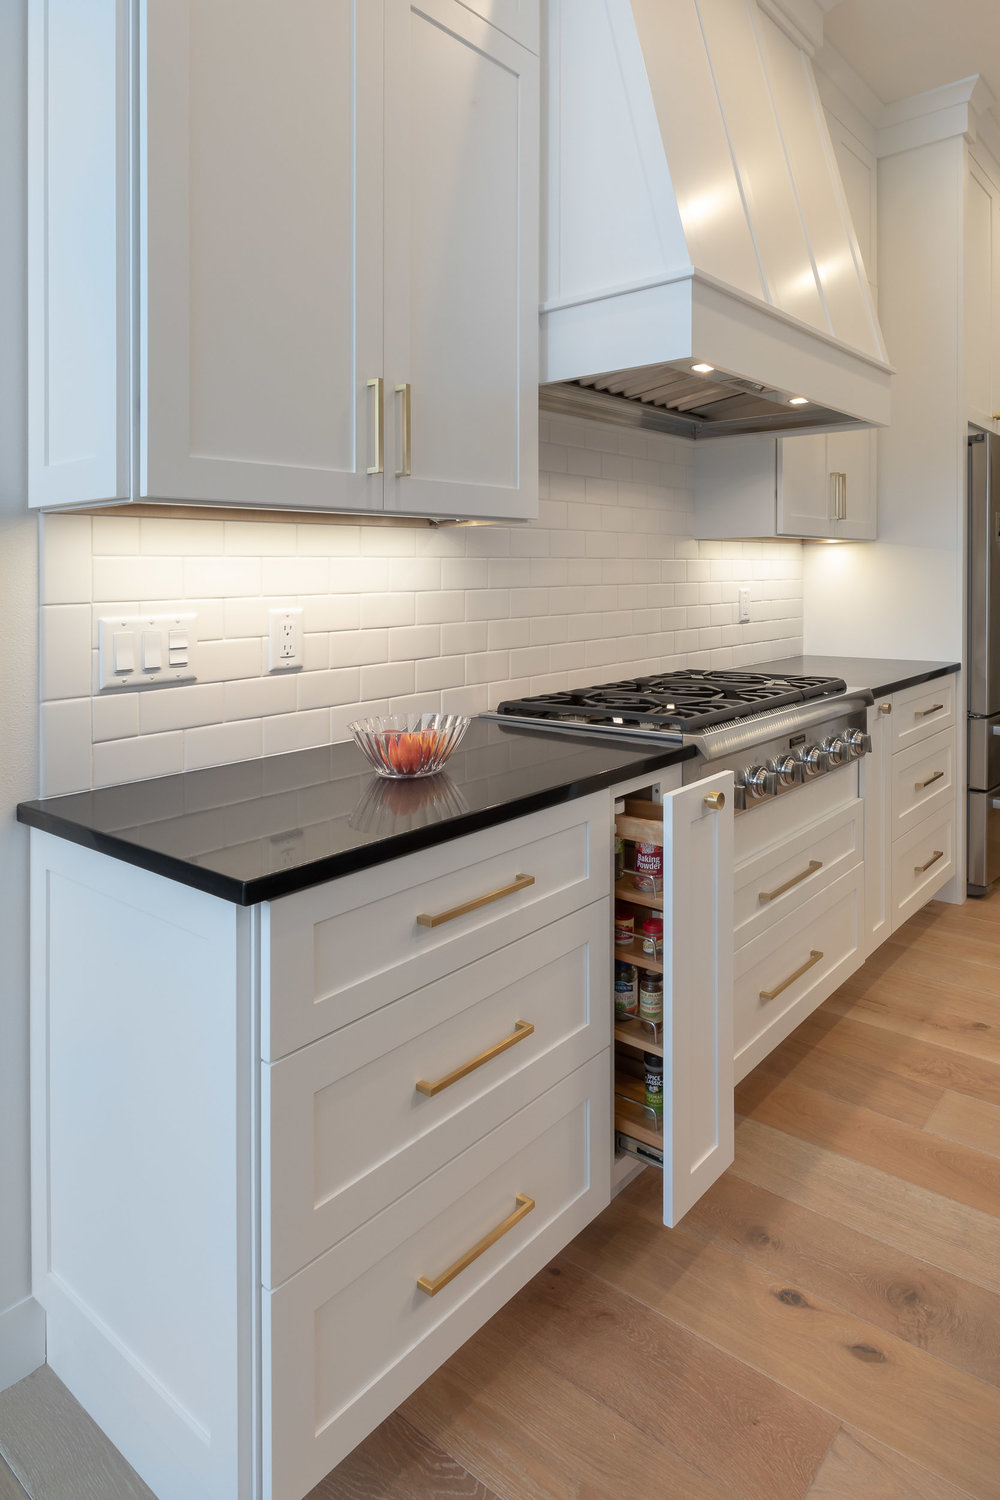 beyond-the-box-panted-cabinets-2.jpg